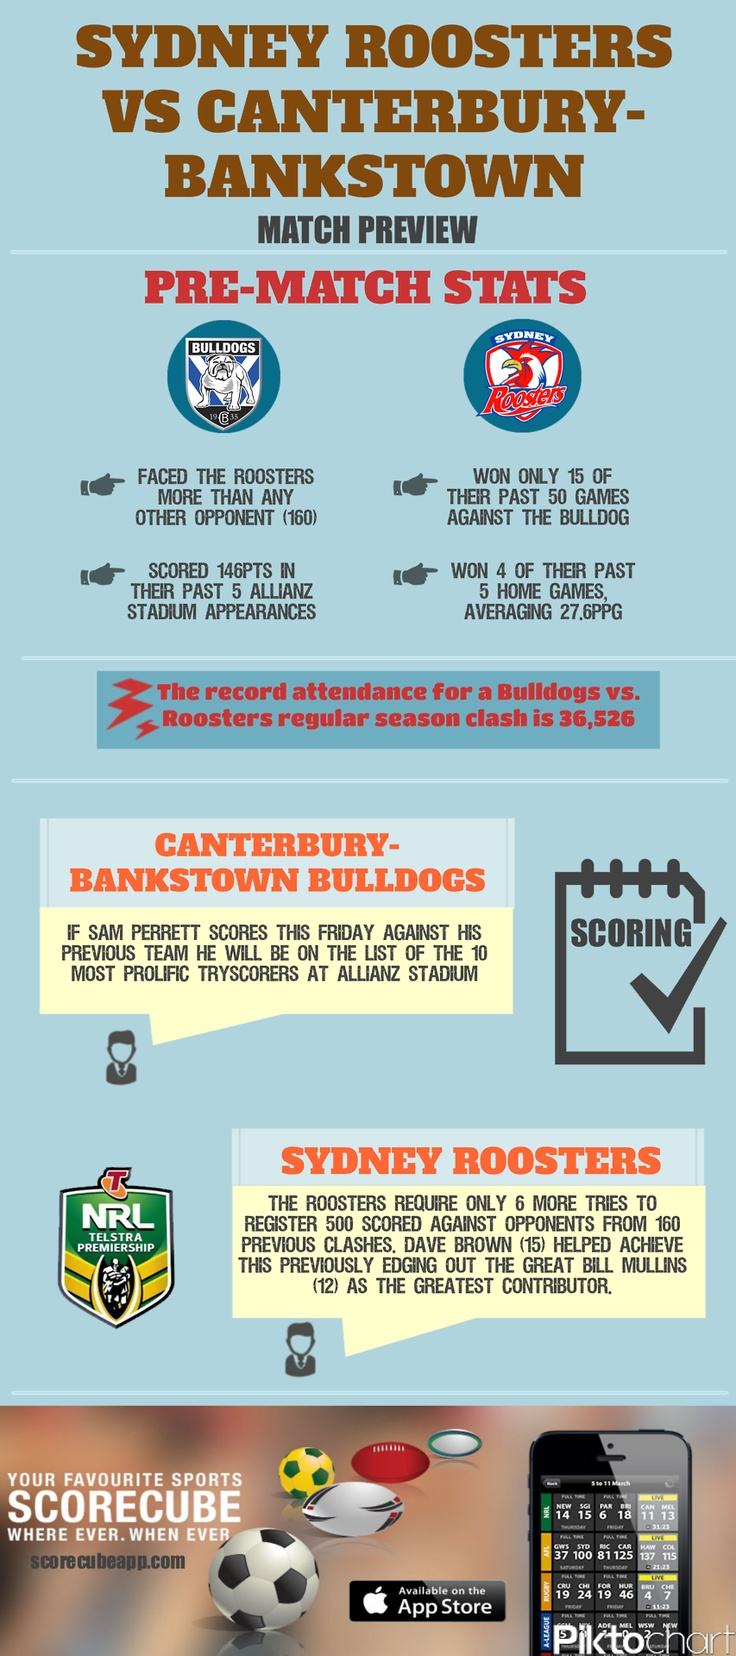 Sydney RoostersvsCanterbury-Bankstown Bulldogstonight! Here's a pre-match preview of the twoNRL - National Rugby LeagueteamsFor stats, scores and local schedules of the NRL and your favorite team download the ScoreCube app.http://scorecubeapp.com/  Download the app here: itunes download link  Follow us on Twitter:@scorecubeapp  We are also on Facebook: https://www.facebook.com/scorecube